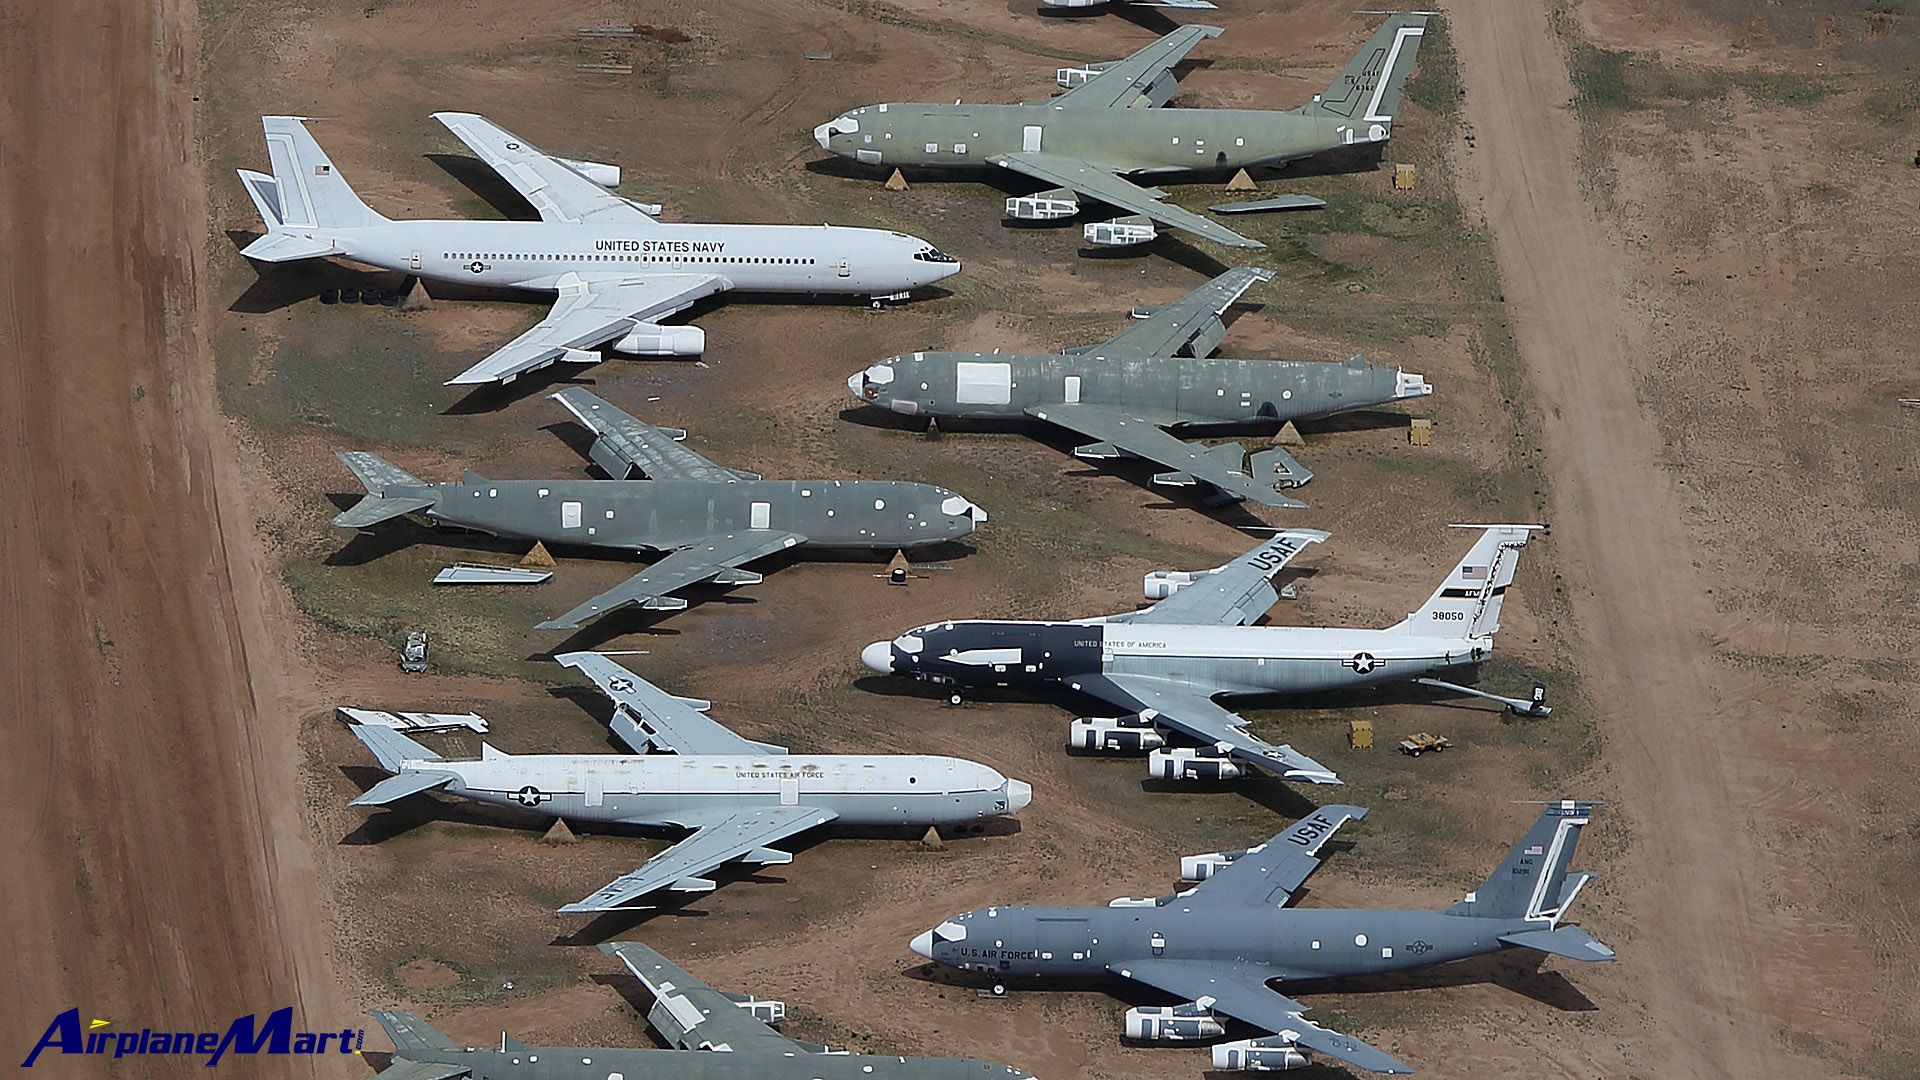 Davis Monthan Amarg S Role As The Largest Military Aircraft Boneyard